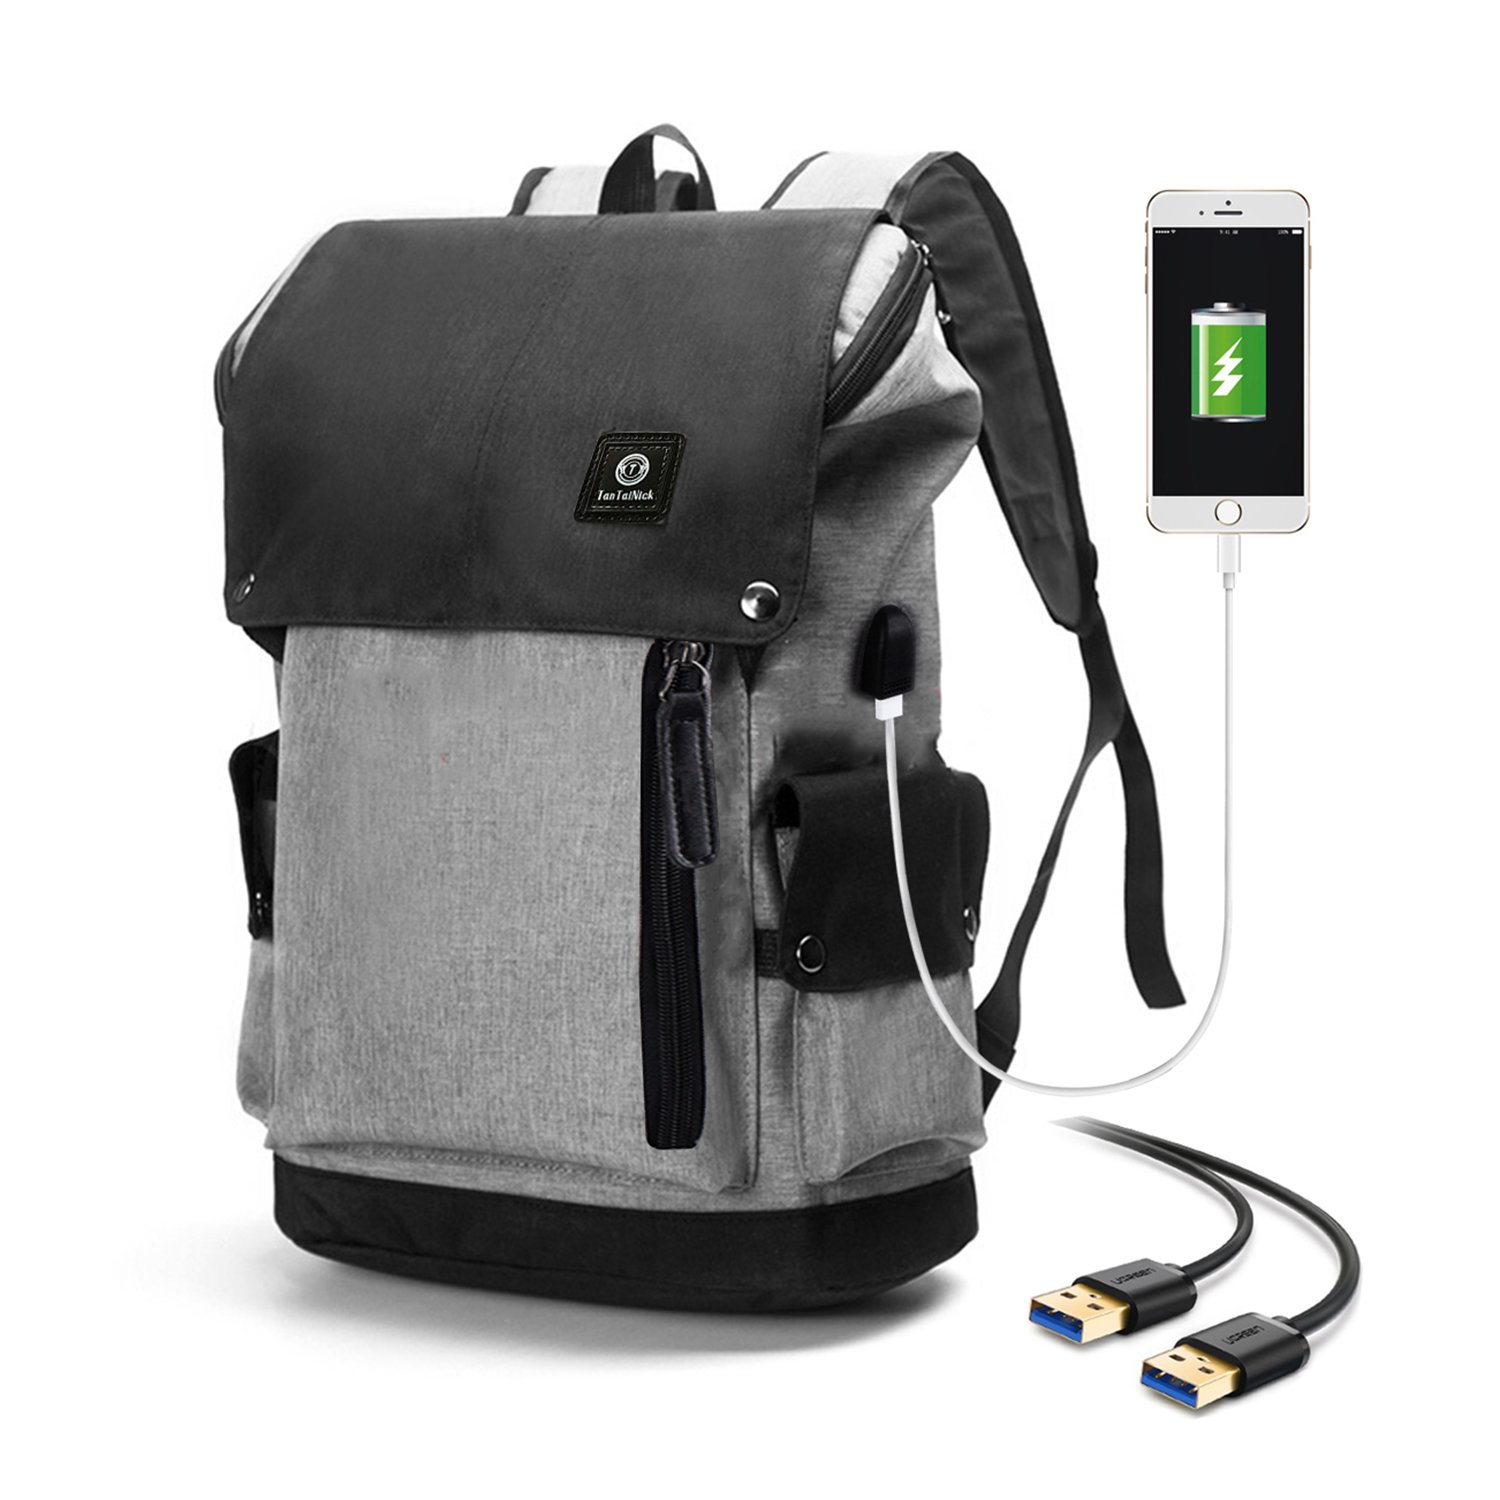 f6d8eaff63ec The backpack screams business and connectedness when you catch a glimpse of  it. It comes with a USB port connecting your power bank inside and phone or  ...